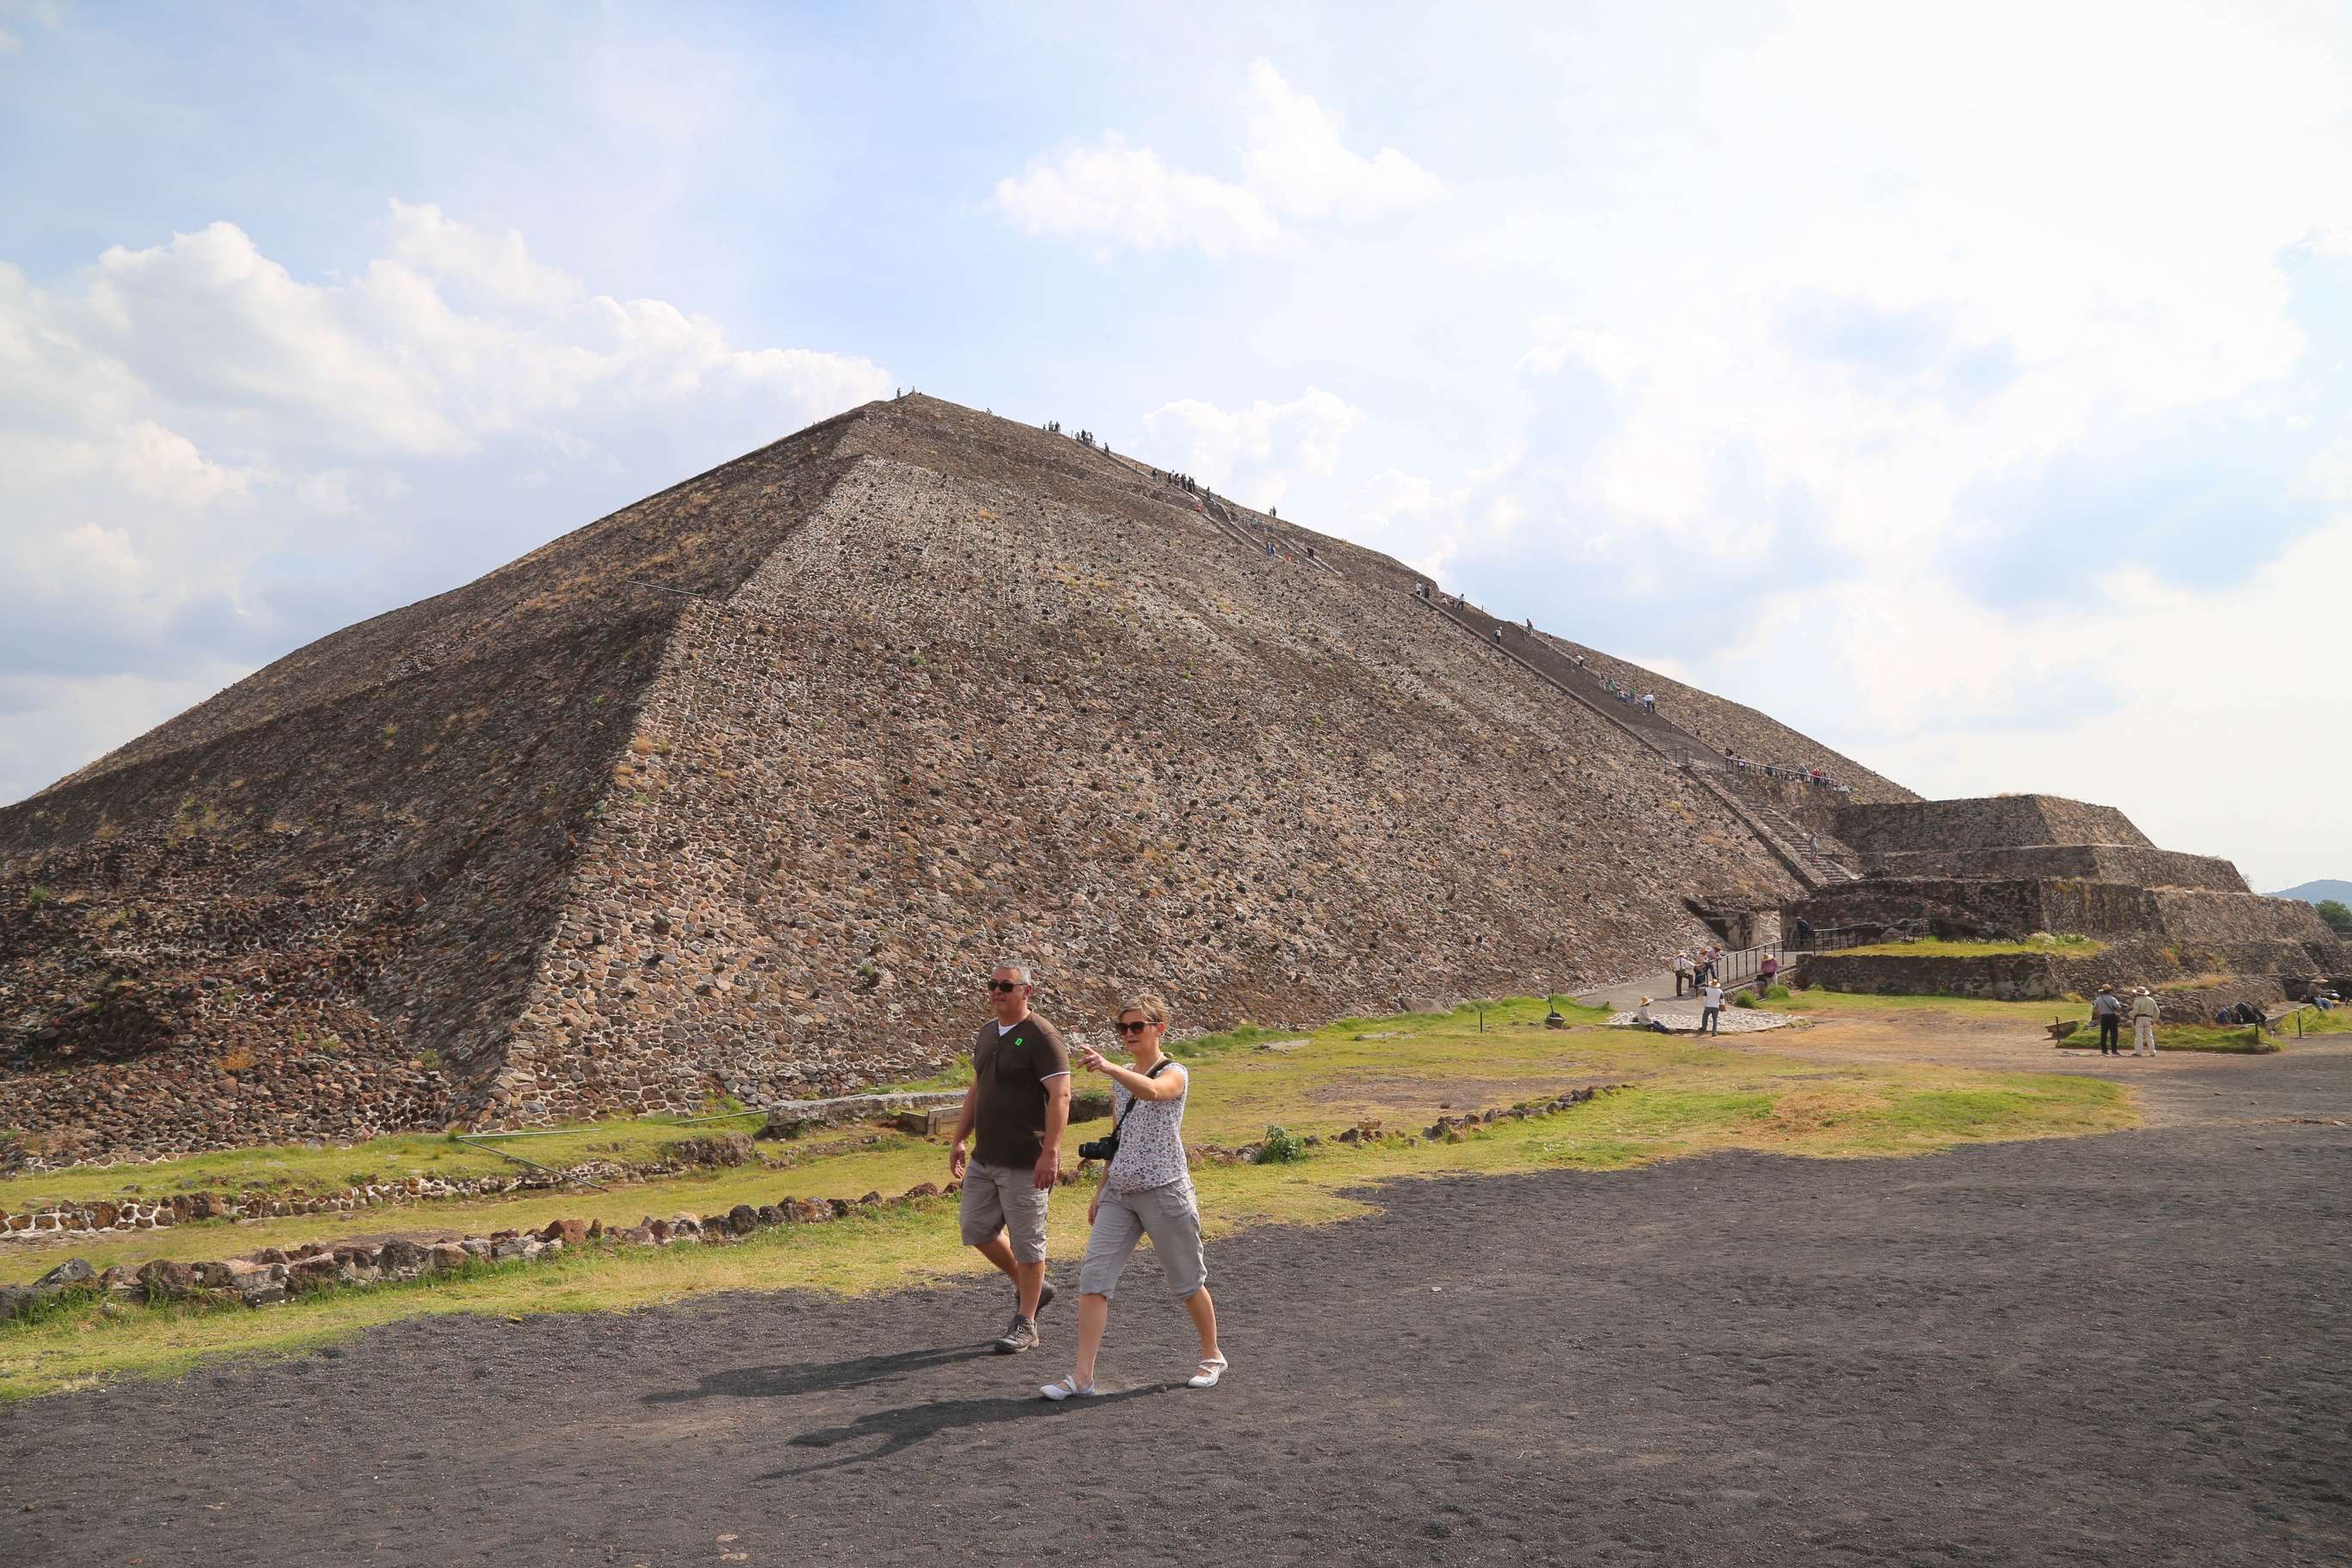 Teotihuacan is the largest pyramid in Mesoamerica and the third largest in the world.